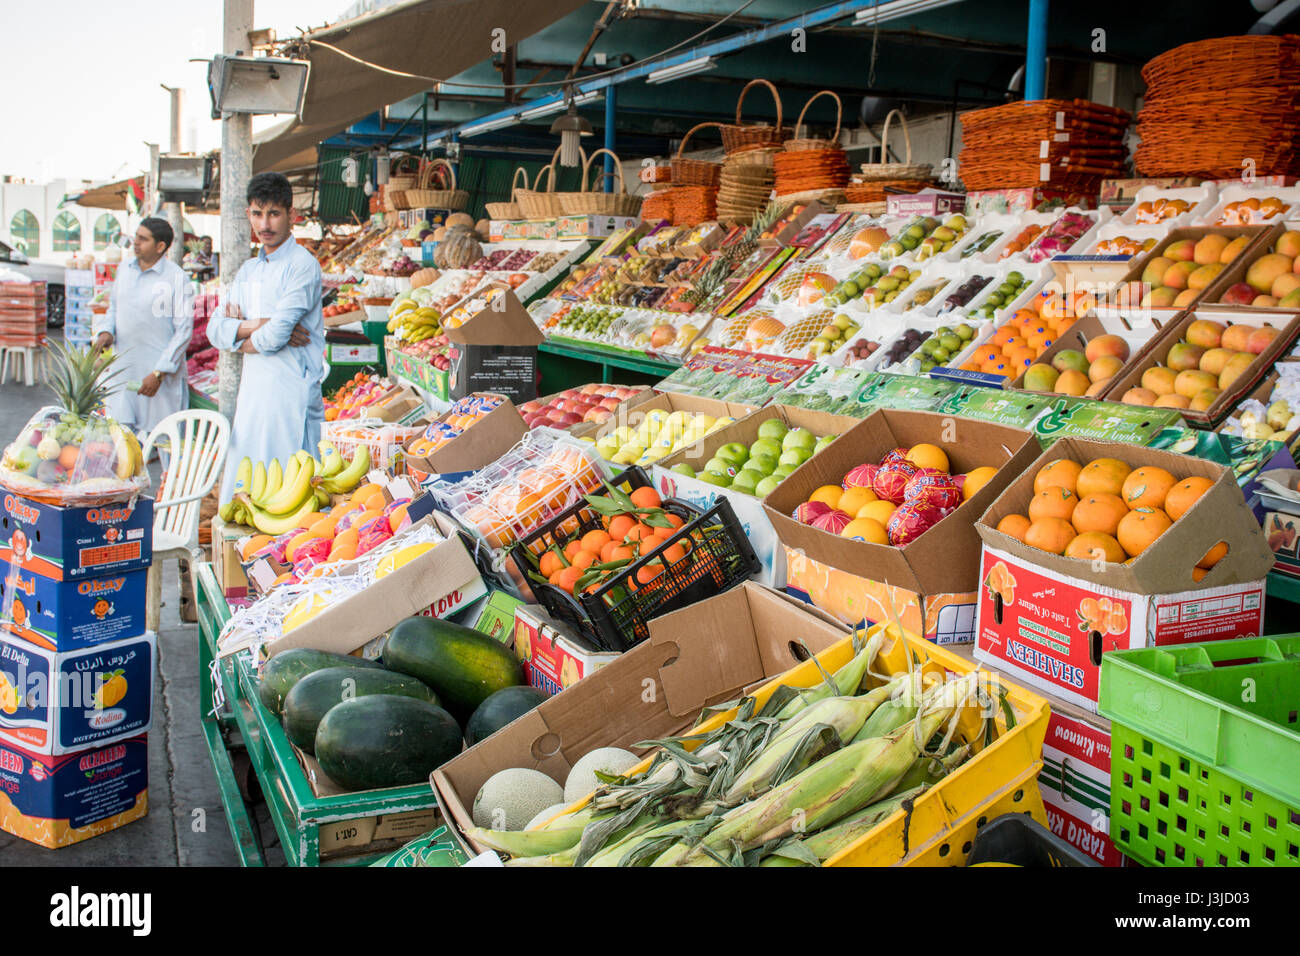 Vegetable Market Abu Dhabi Stock Photos & Vegetable Market Abu Dhabi